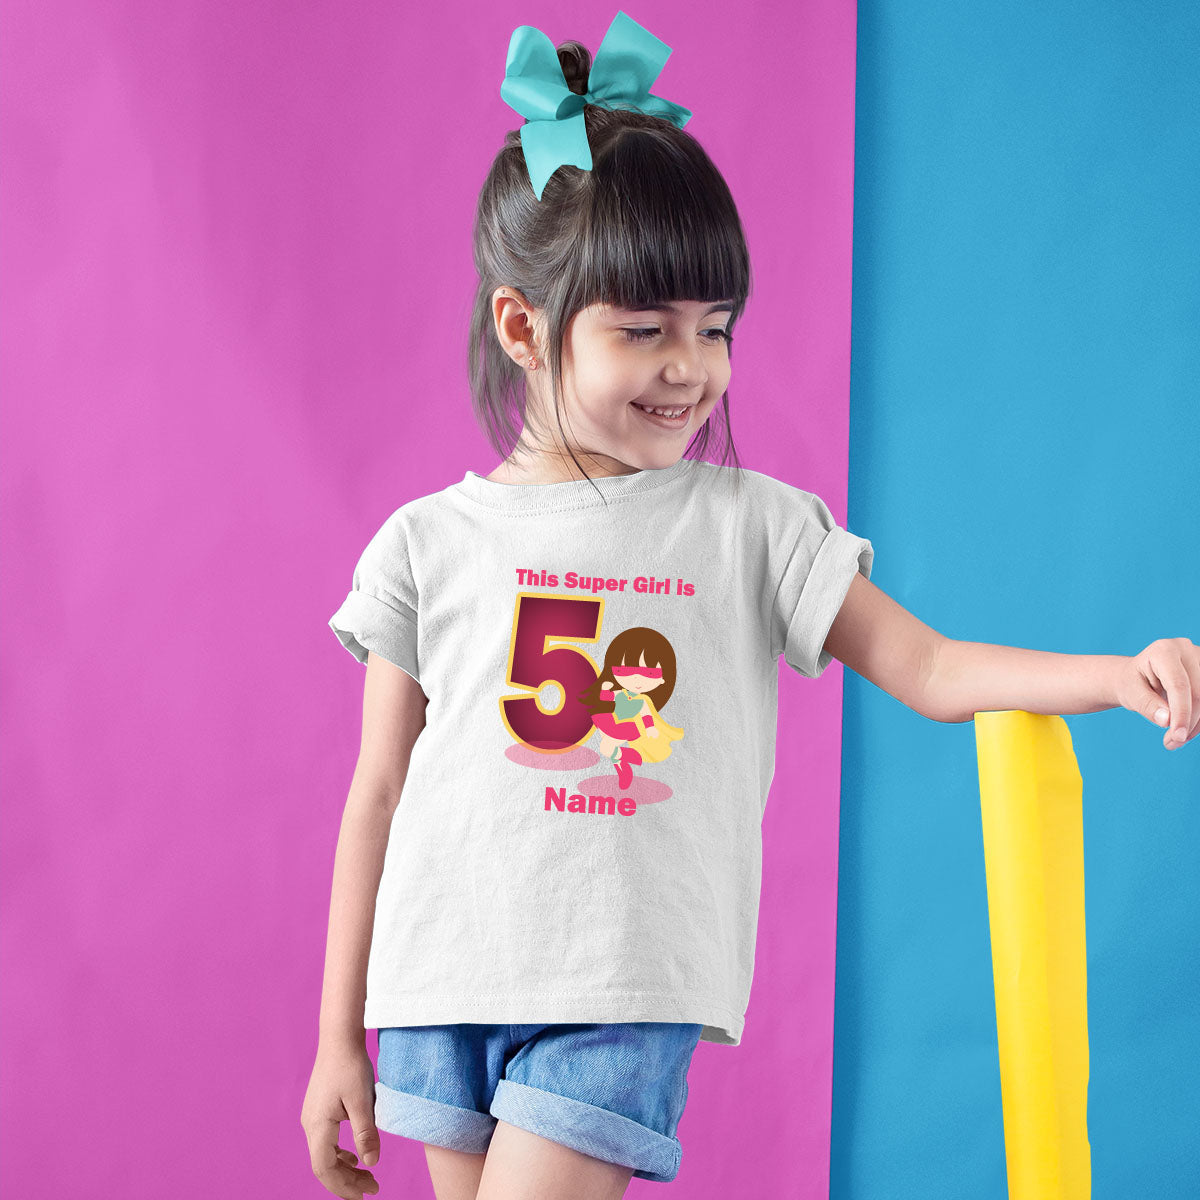 Sprinklecart Super Girl 5th Birthday Wear | Customized Awesome Birthday T Shirt Gift for Girls